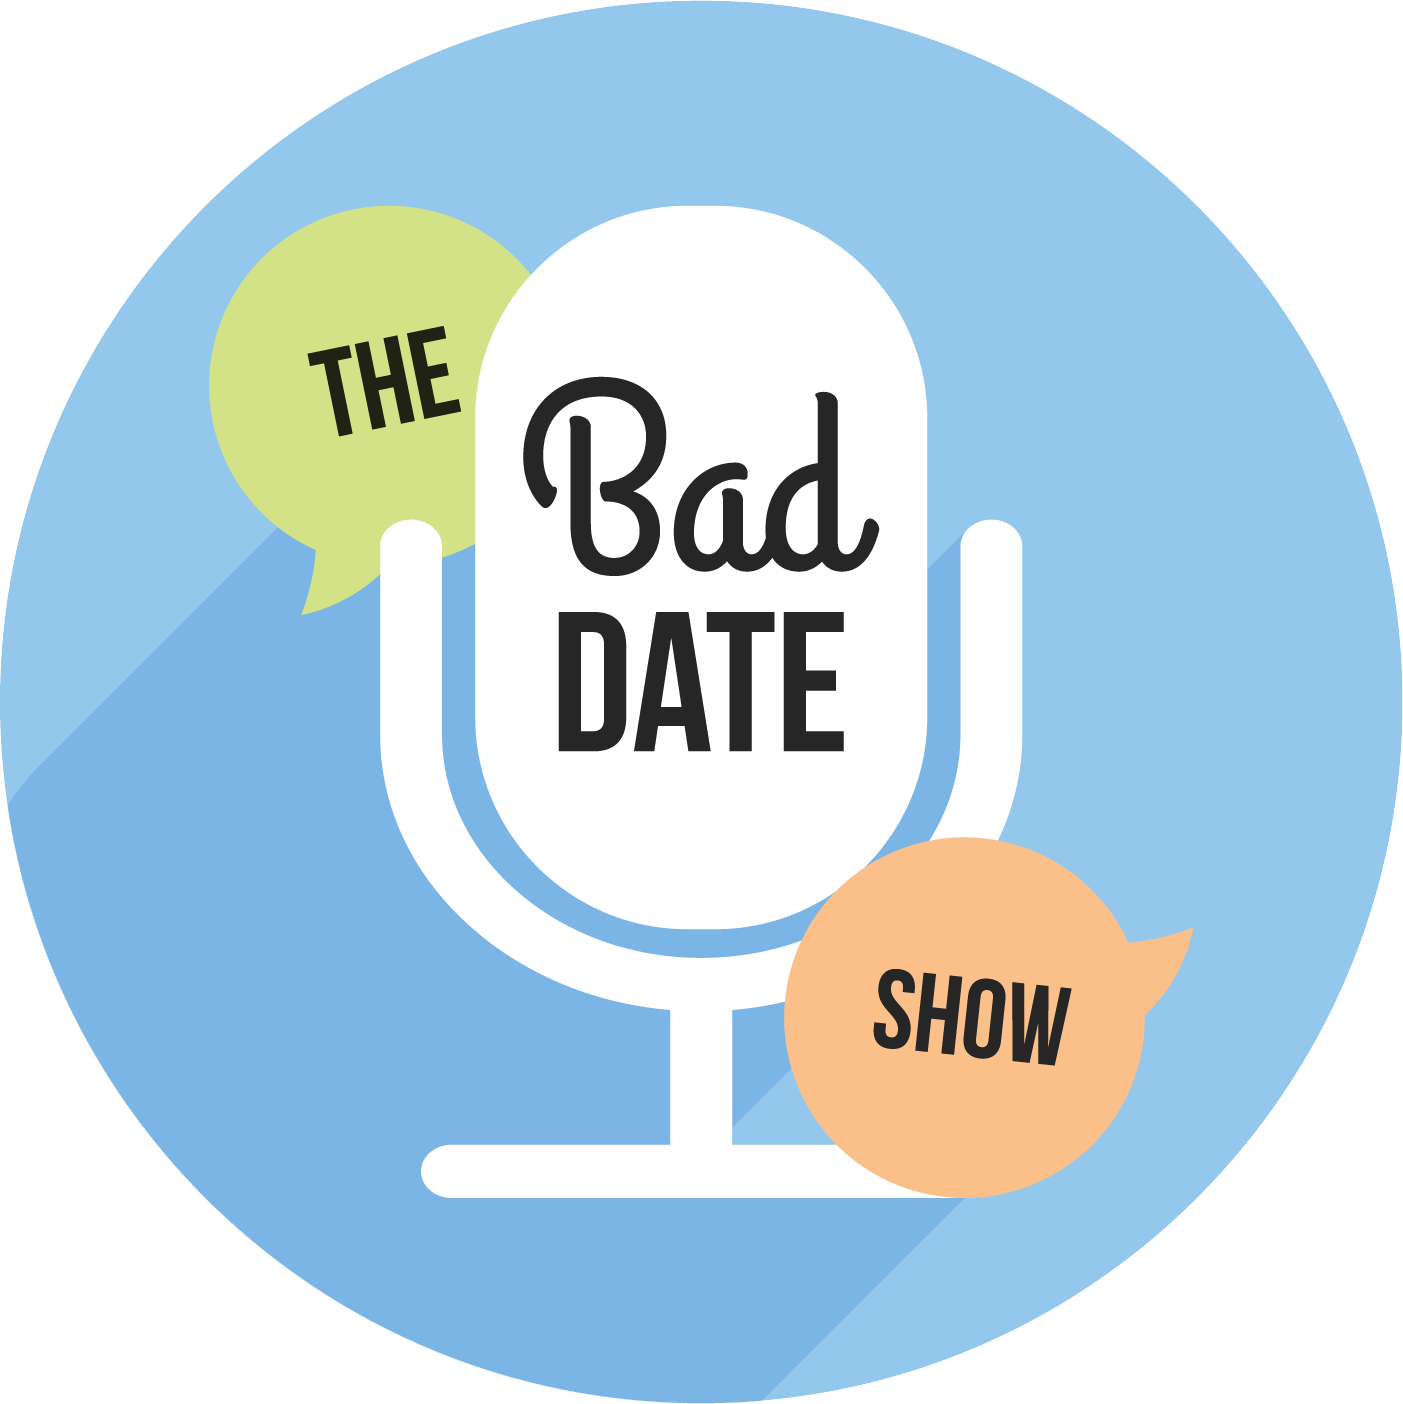 The Bad Date Show